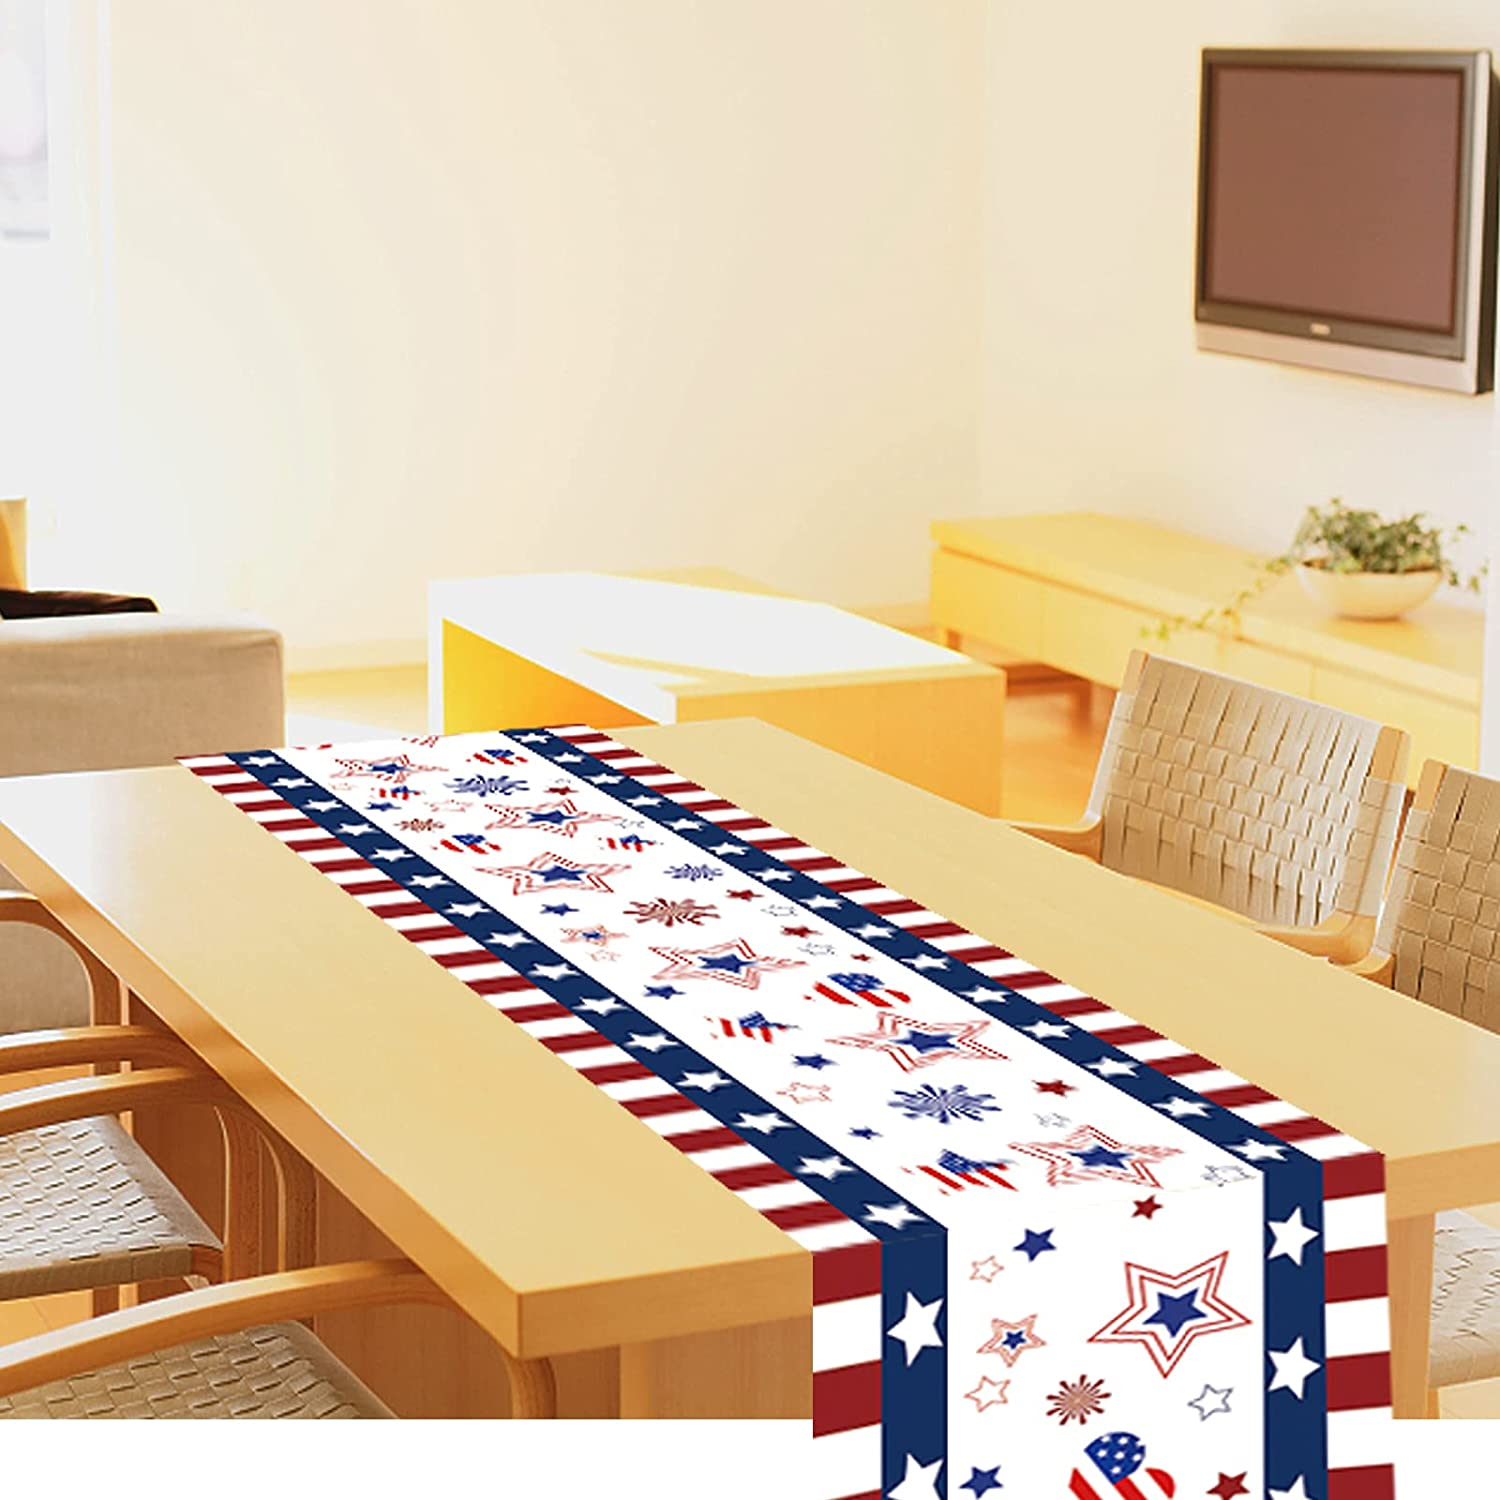 Oringaga Fourth of July Party Table Runner Star Tablecloth - 4th of July Patriotic Birthday Party Decoration Supplies Home Decor Red White Blue Table Cloth(12 x 72 Inch)